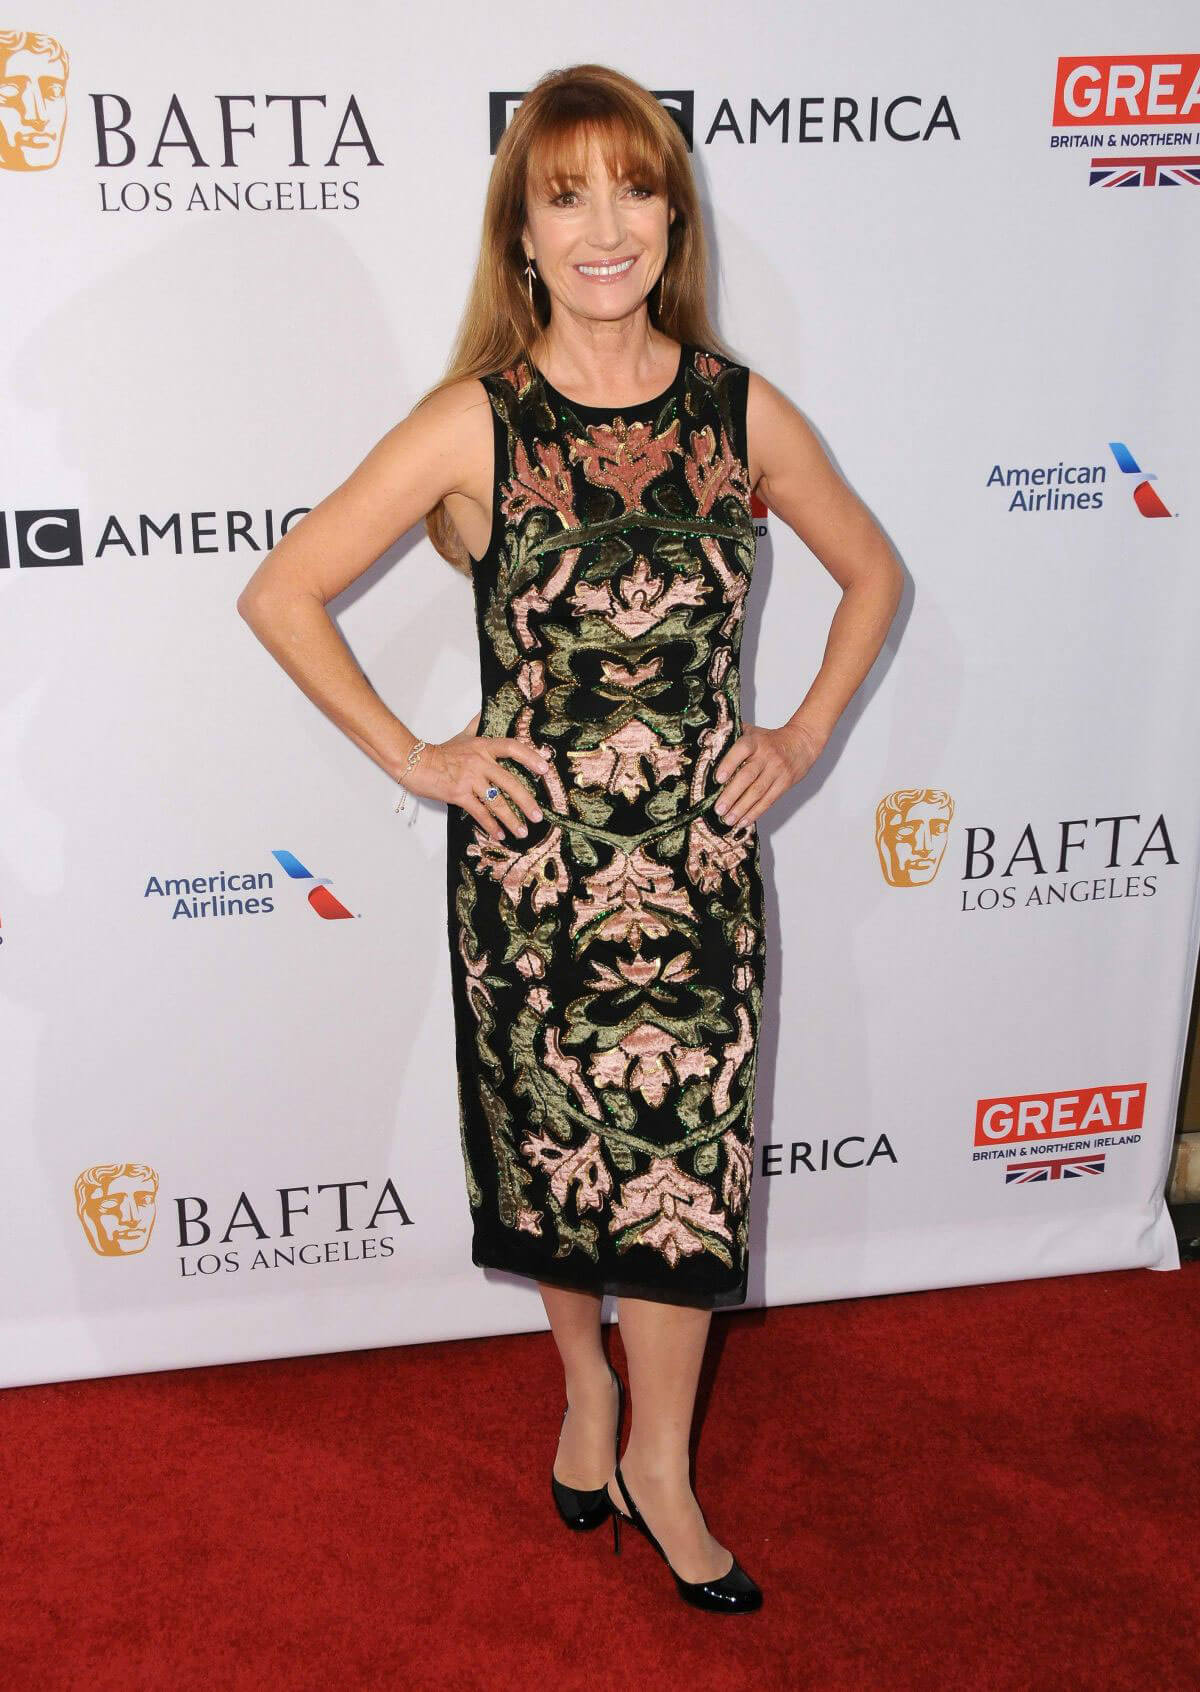 Jane Seymour at Bafta Tea Party in Los Angeles